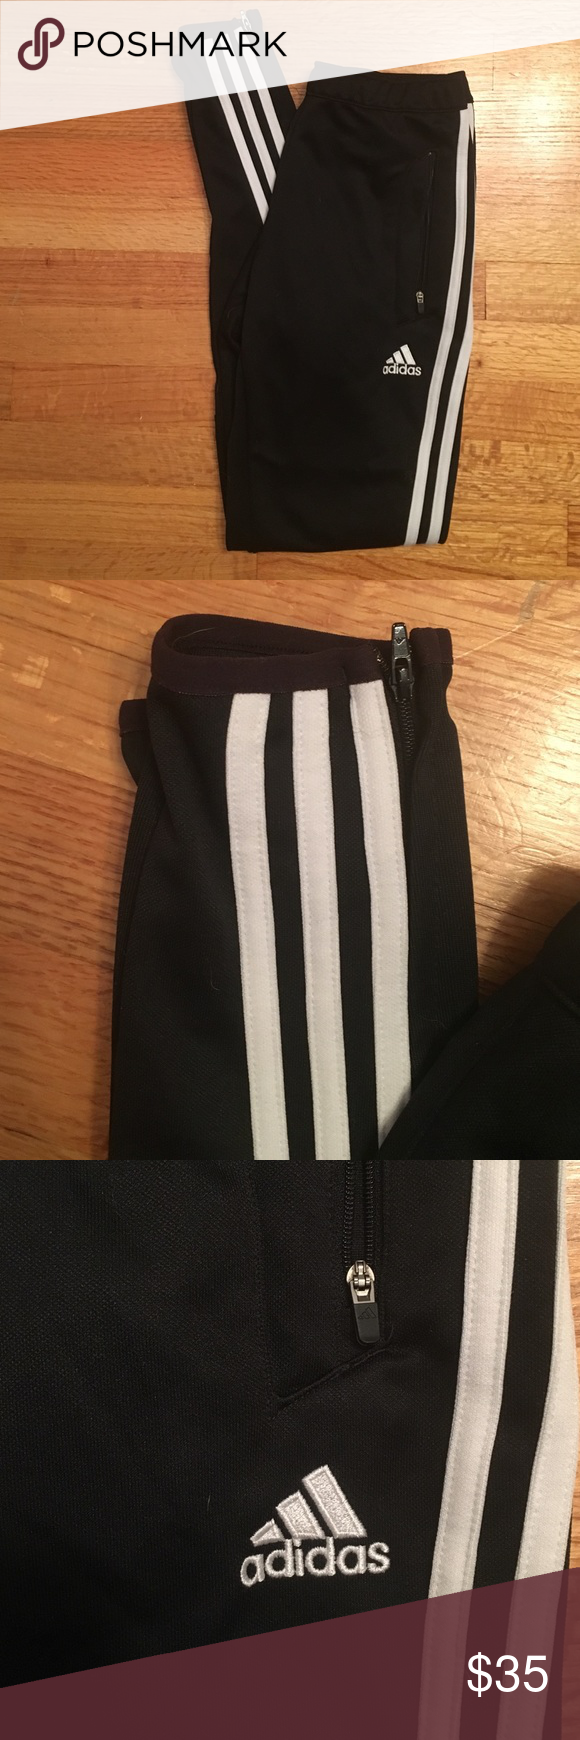 Adidas track pant Zipper pockets and ankles, drawstring waist. XS In women's. Never worn Adidas Pants Track Pants & Joggers